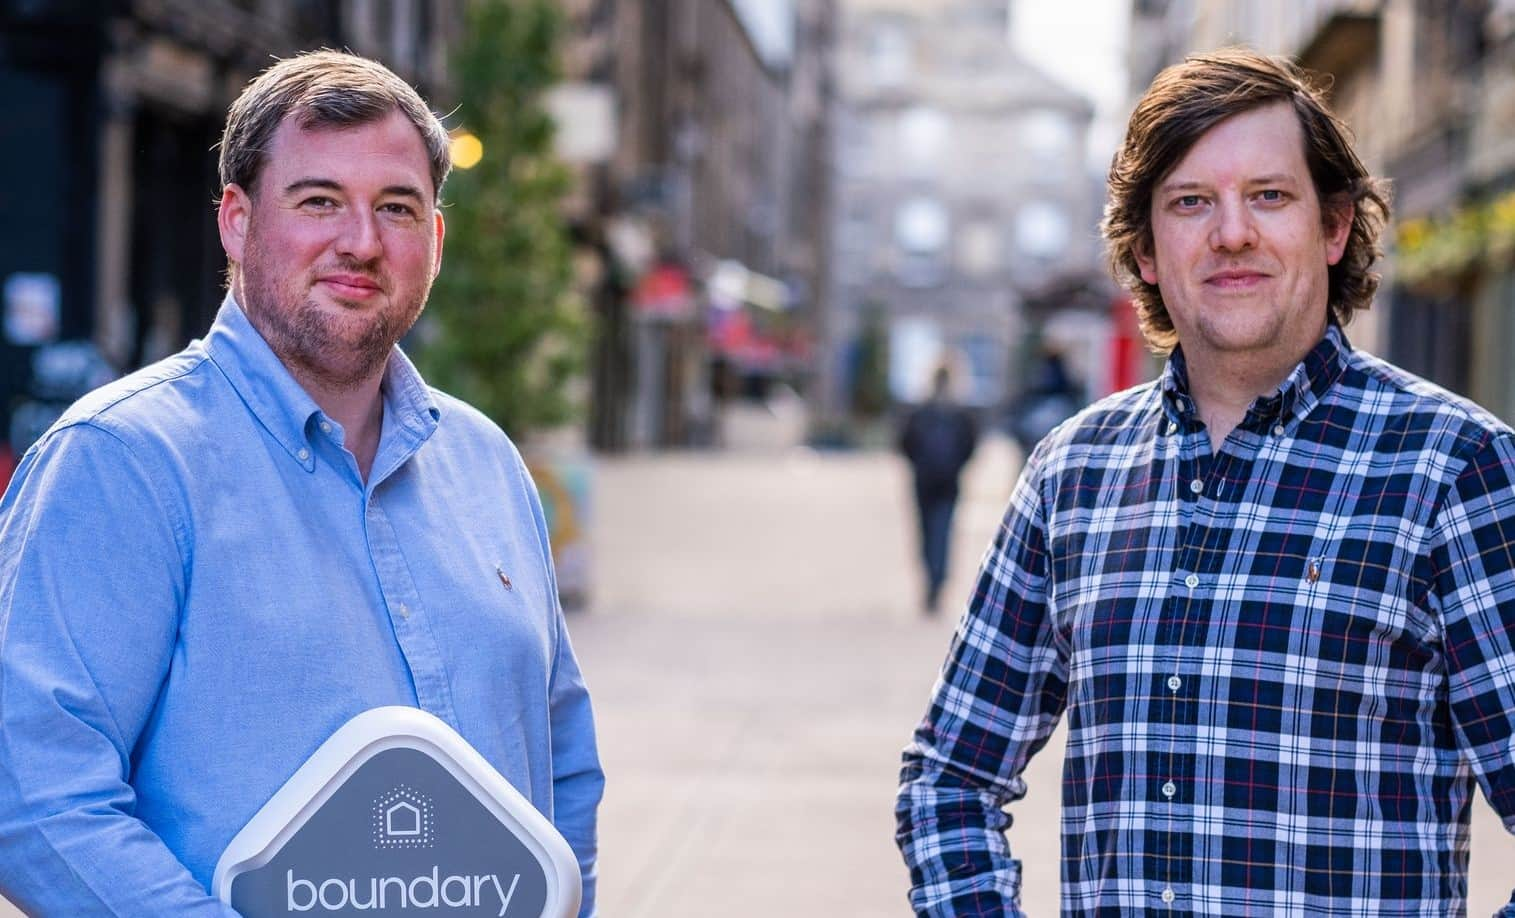 Boundary Technologies  secures £3.7 million Seed Follow On investment from investors including  Skyscanner Co-Founder Gareth Williams